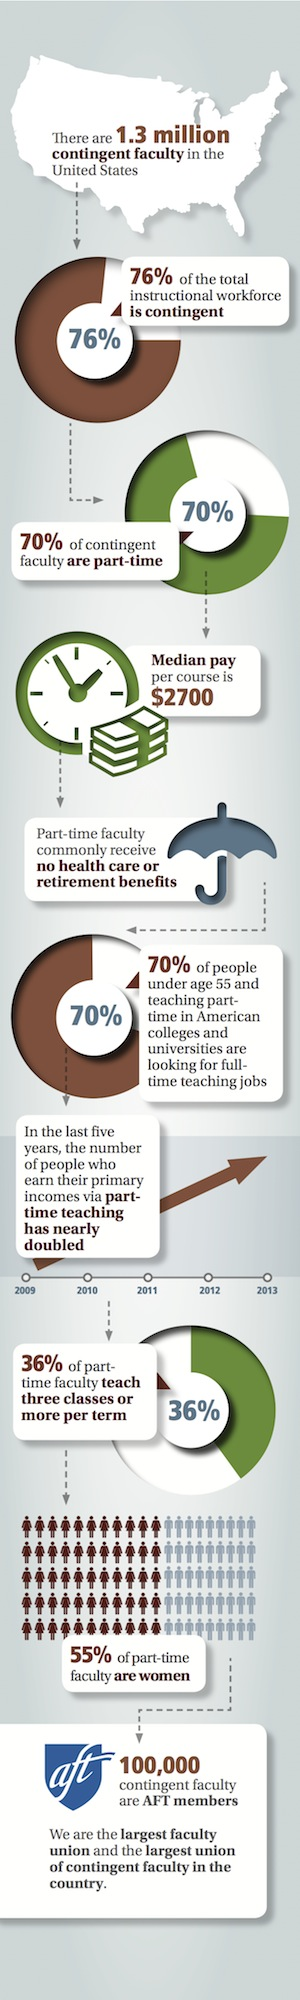 Highered_infographic